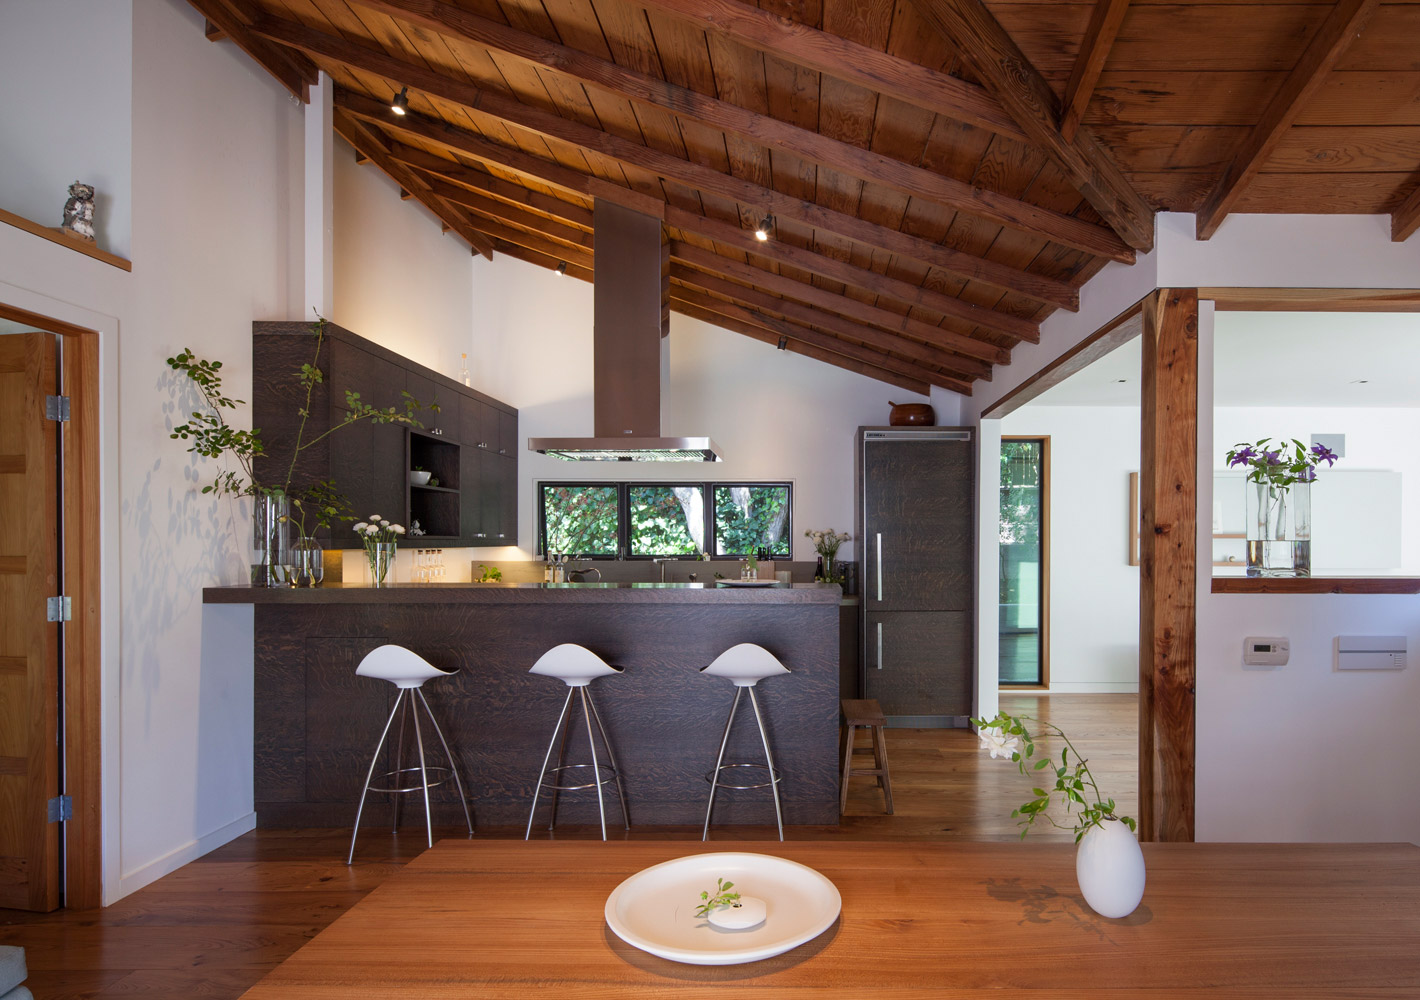 5_Feldman Architecture_The Shack_Inspirationis